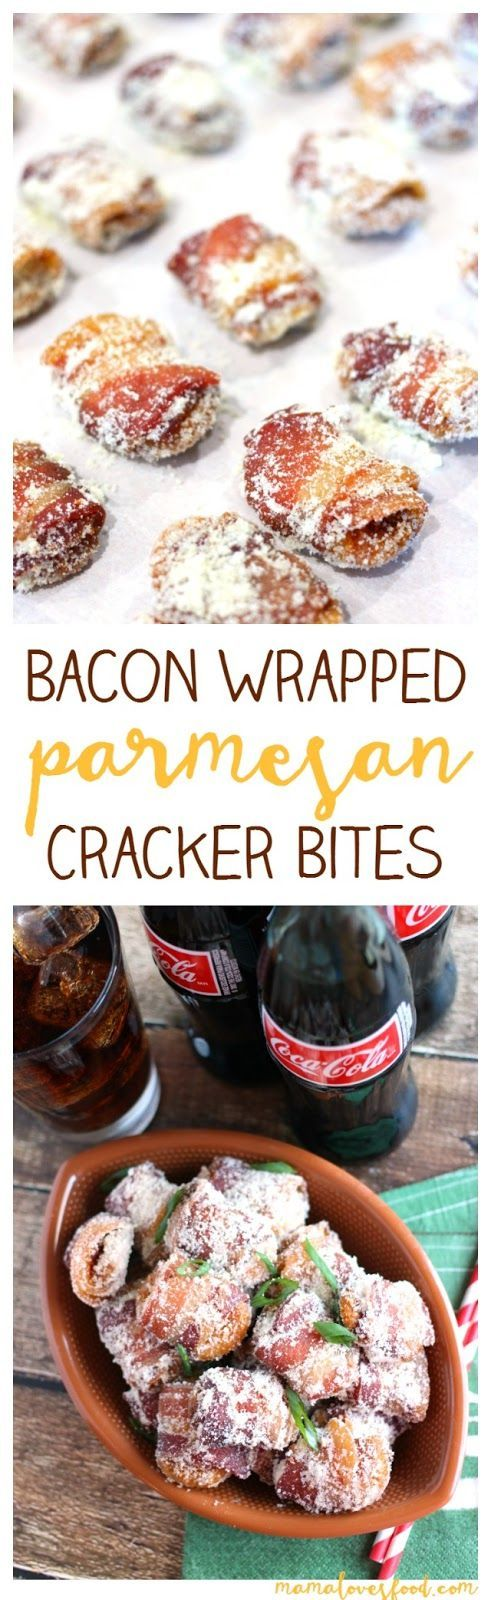 Bacon Wrapped Parmesan Crackers - these are cheesy bacony savory bites of heaven! The perfect recipe for your next party :-D